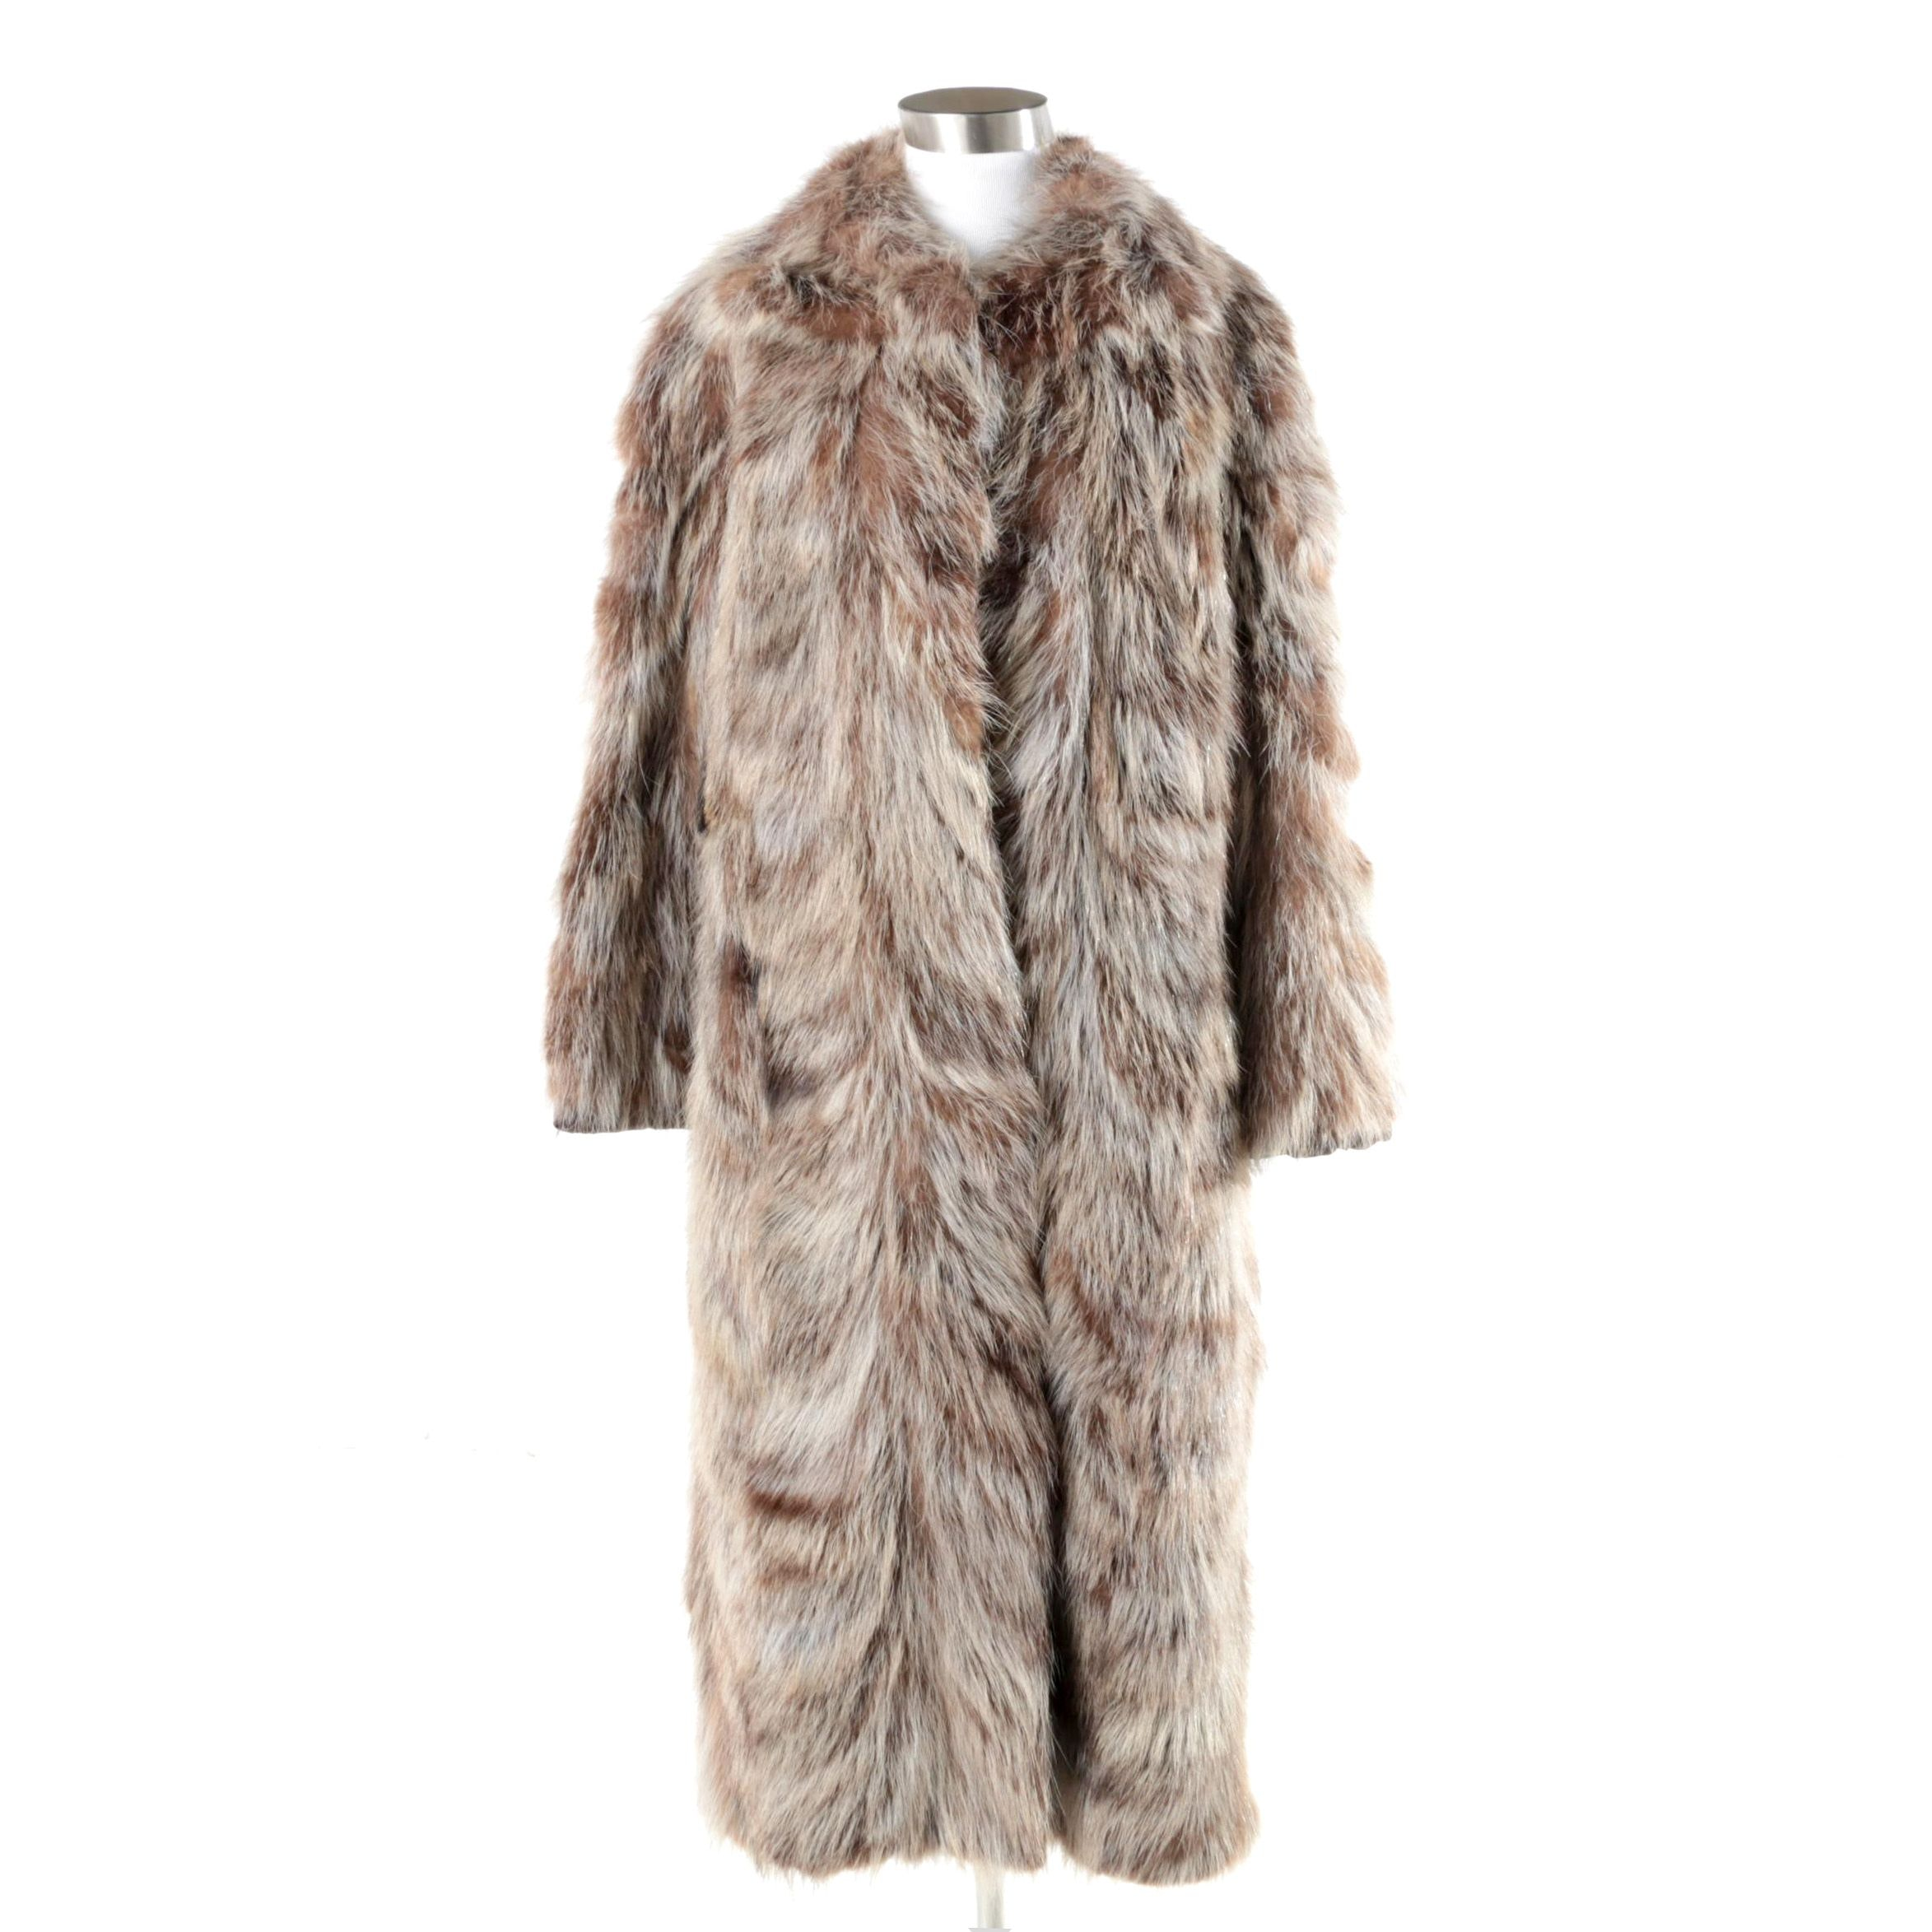 Women's Raccoon Fur Coat